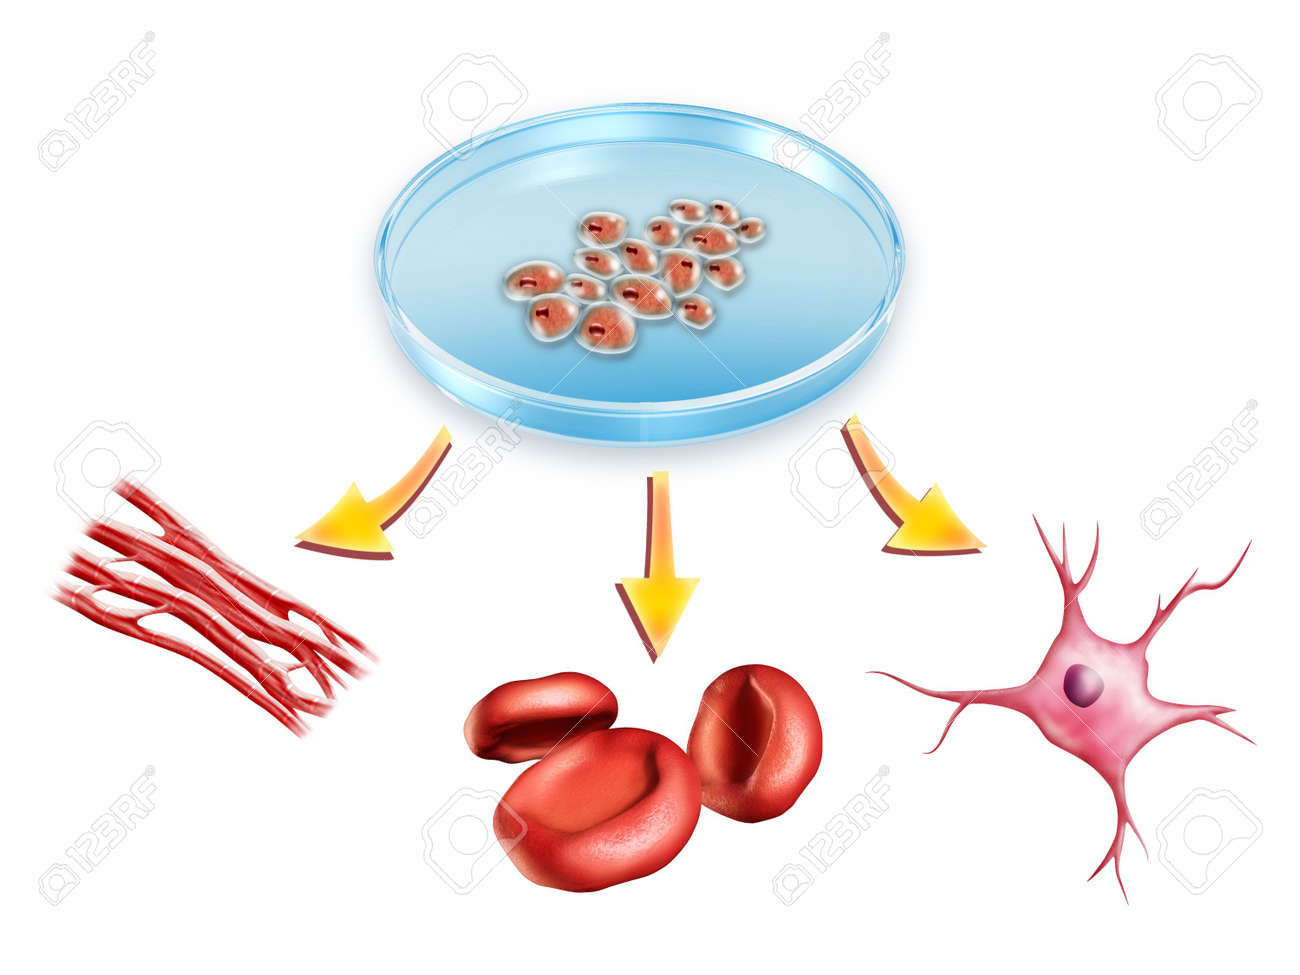 Pluripotent stem cells used to generate muscle, blood and neural cells. Digital illustration. Stock Photo - 6894029